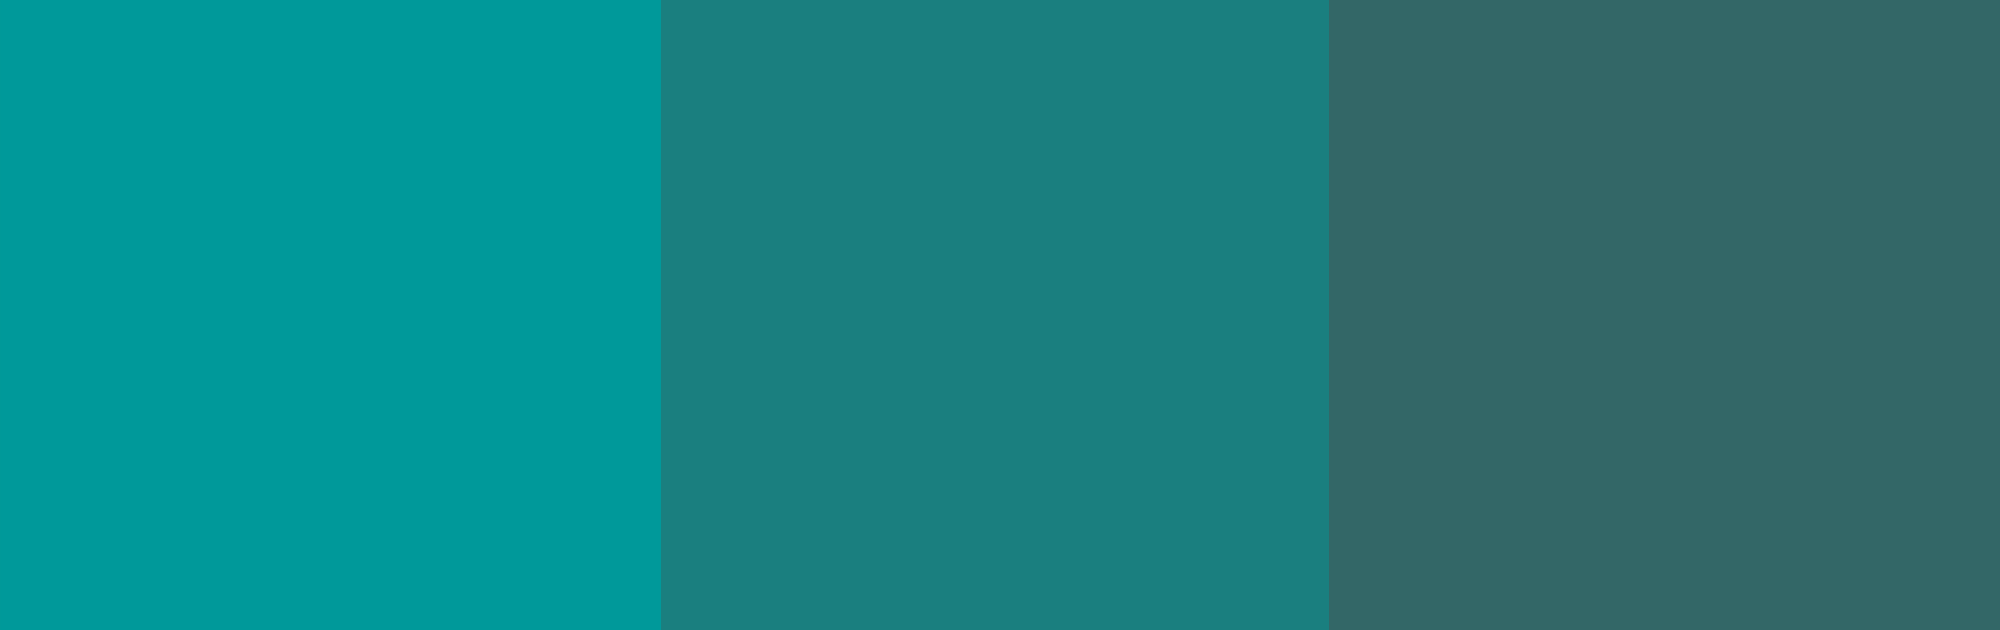 Three monochromatic teal colors.